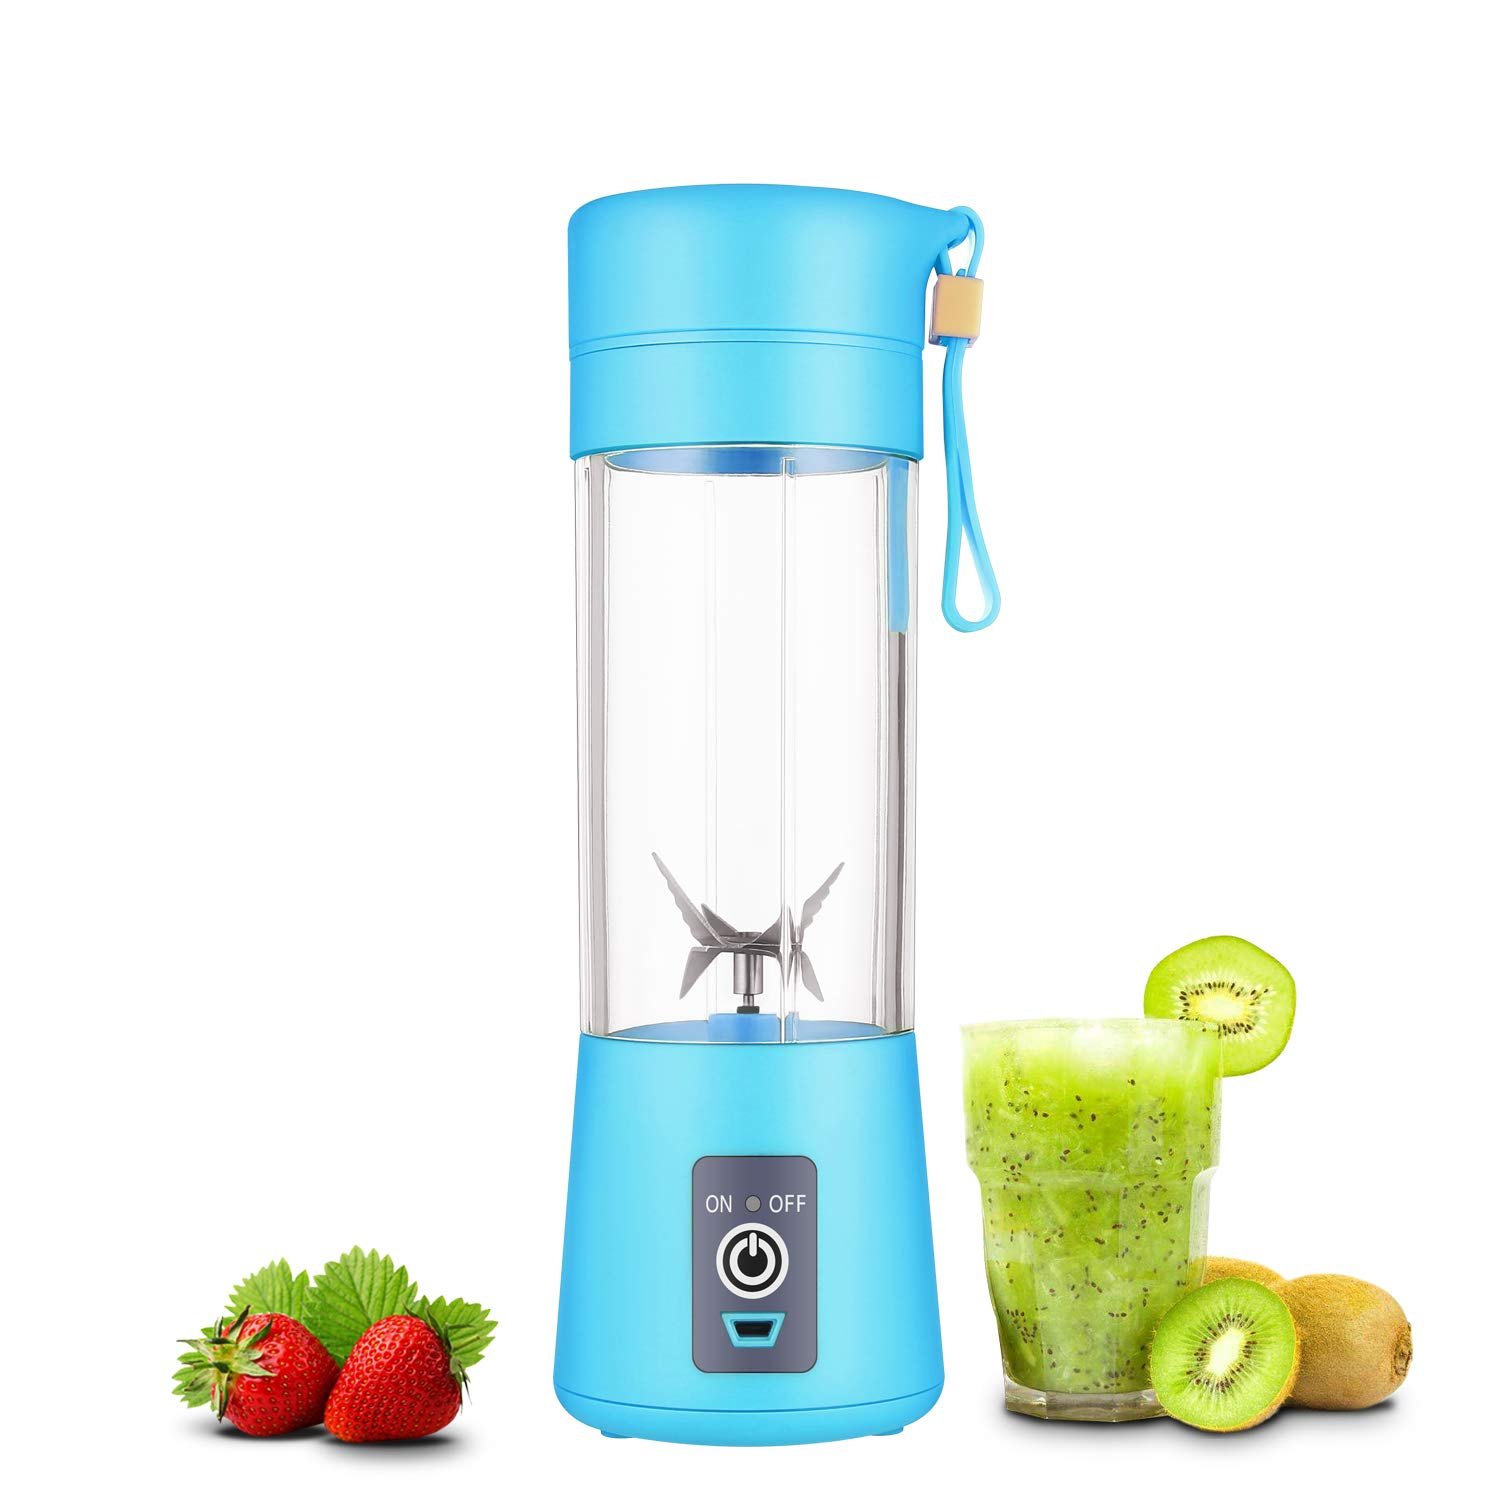 Portable blender Personal 6 Blades Juicer Cup Household Fruit Mixer,With Magnetic Secure Switch, USB Charger Cable 380ML (Blue) by WEYIPE